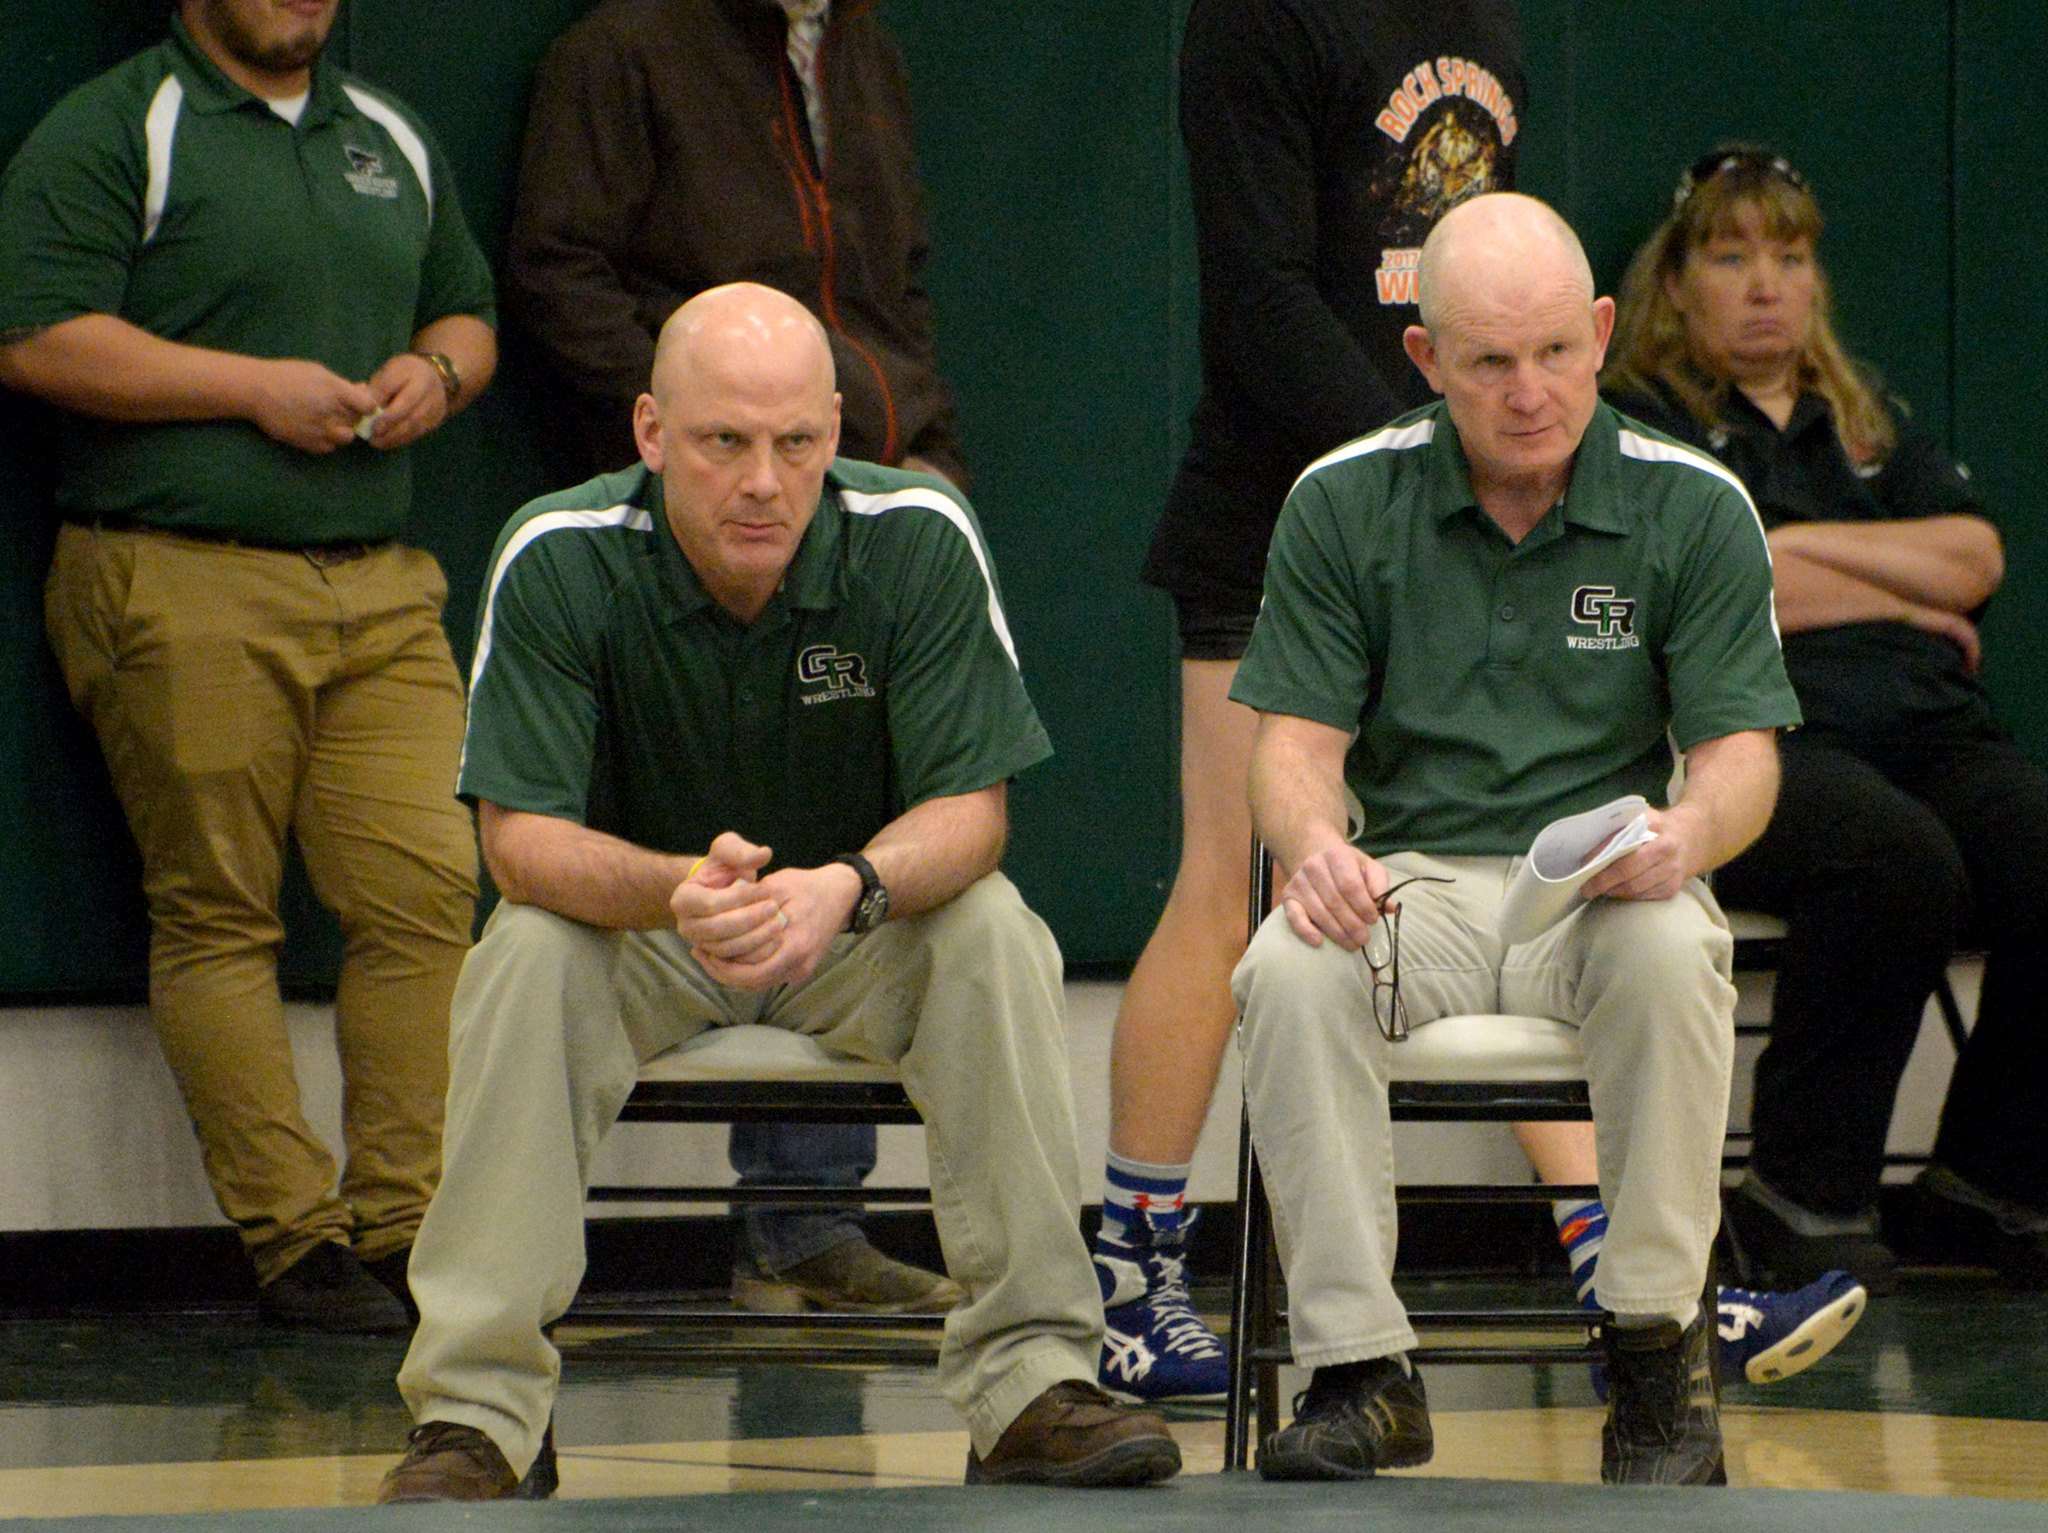 Rhodes Resigns as Green River Wrestling Coach